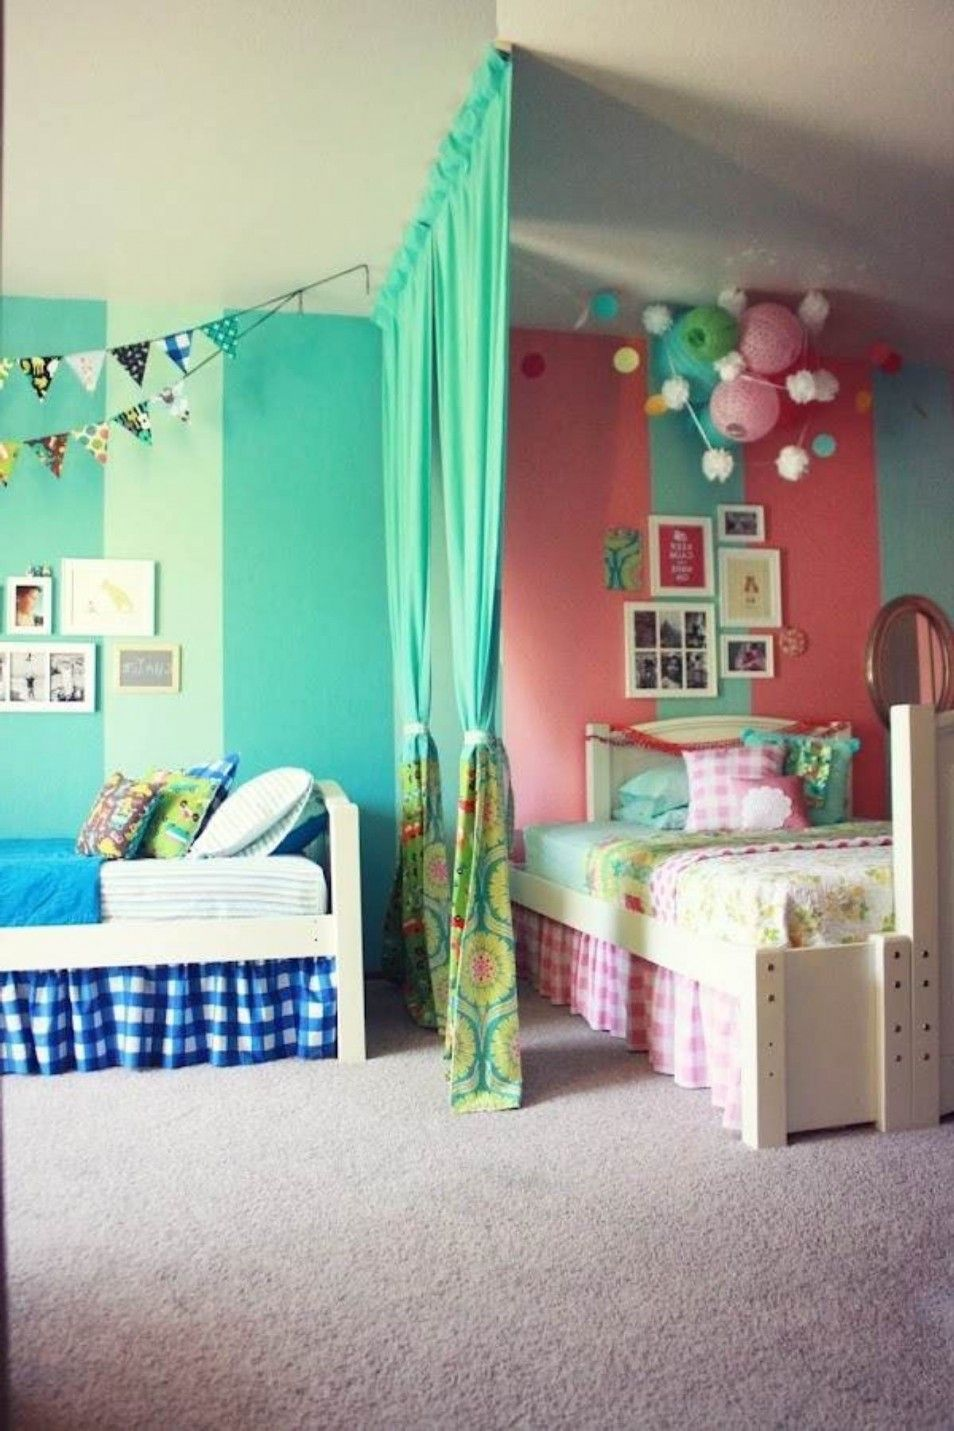 Wall paint colors for girls bedroom - Besf Of Ideas Green And Pink Wall Paint In Cool Ideas For Your Room Has Creative Idea For Ceiling Decorations Above White Bedstead And Grey Carpet